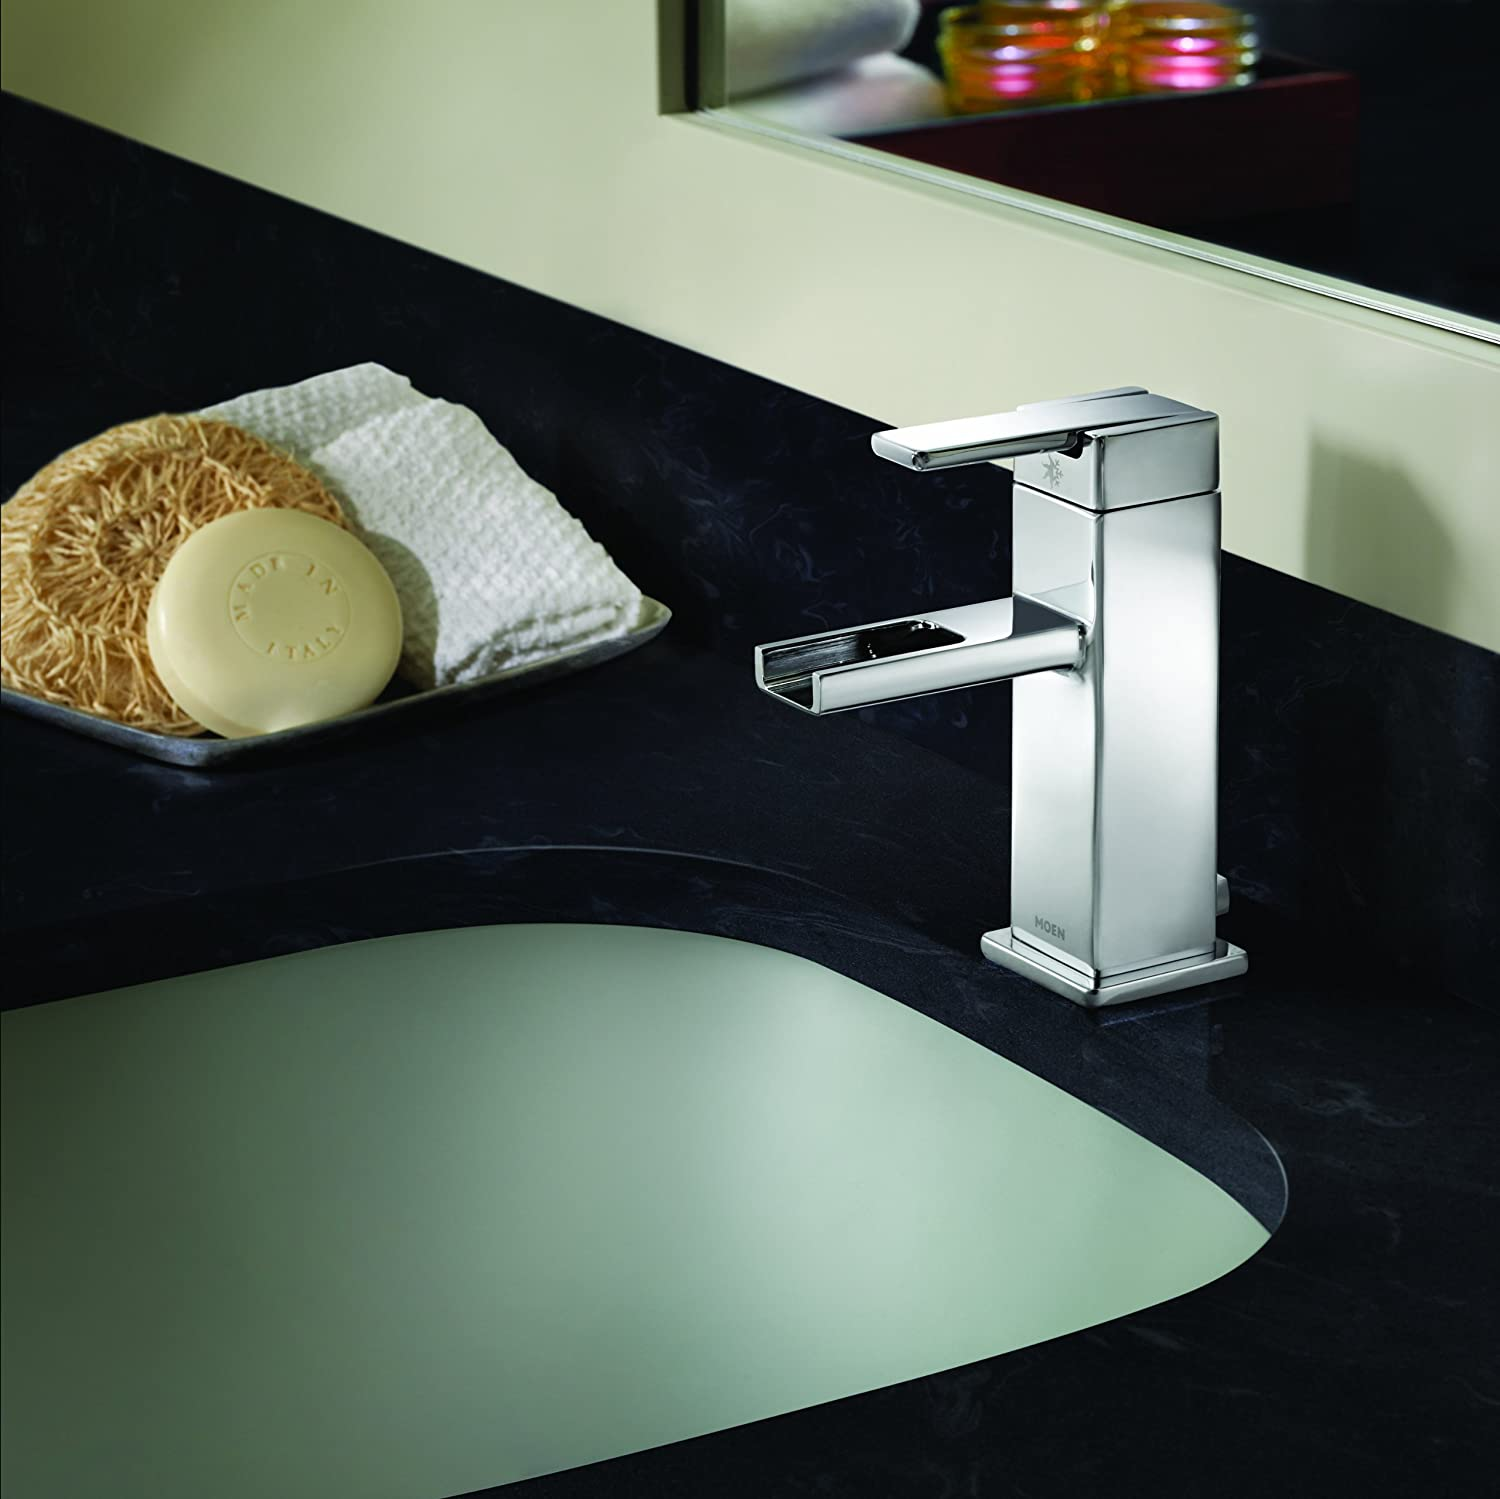 Moen S6705 90-Degree One-Handle Low-Arc Open Waterway Bathroom ...